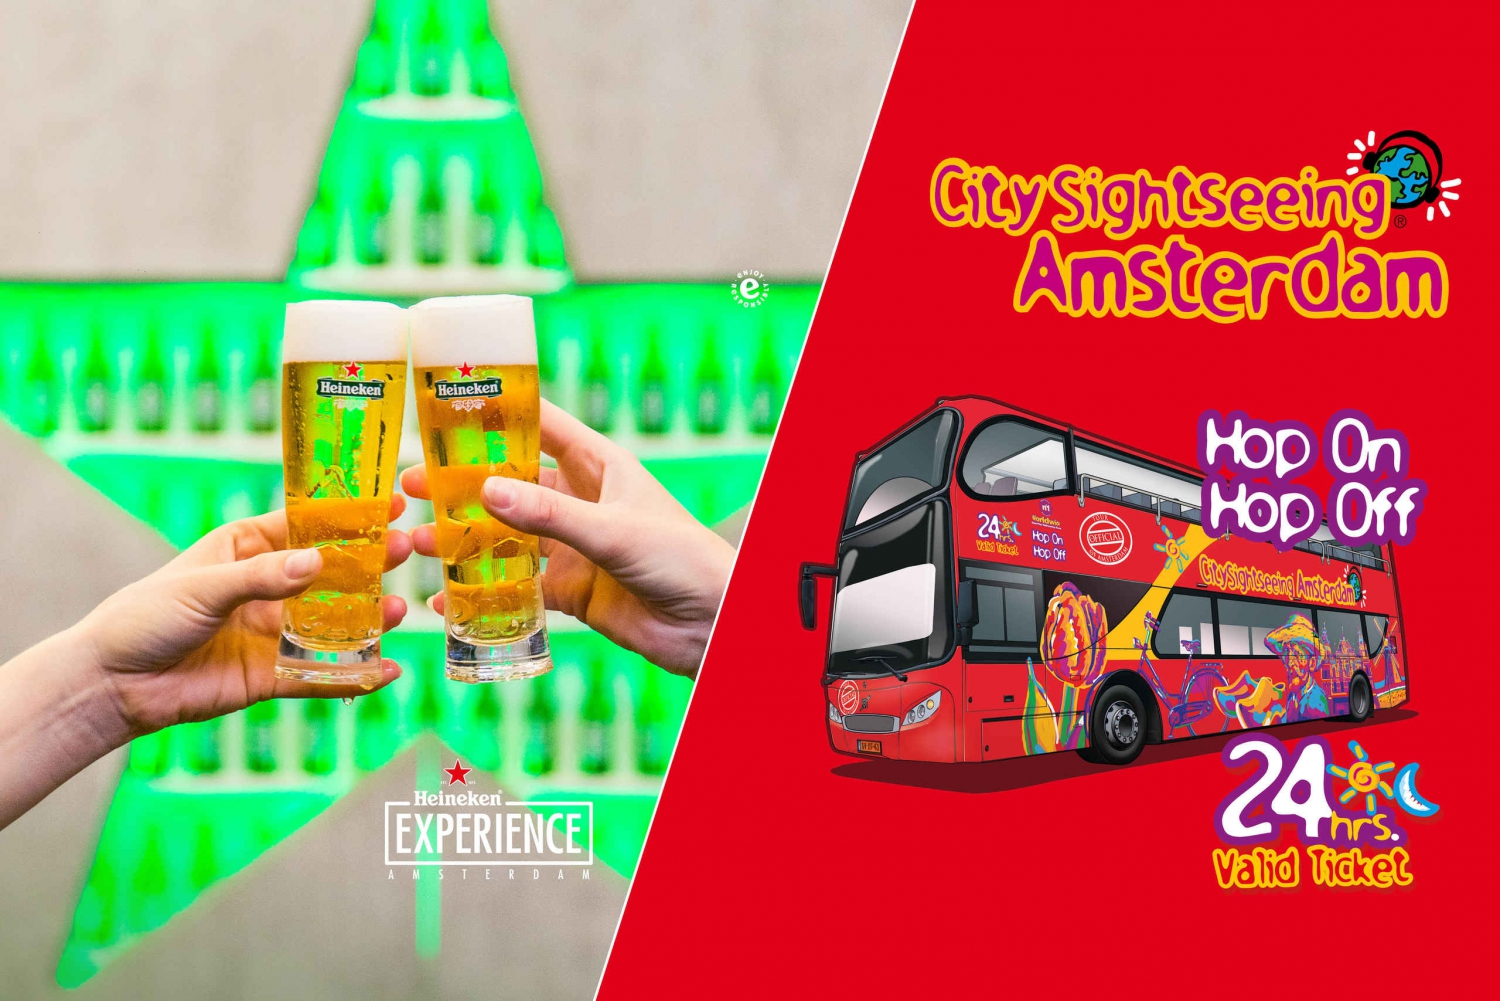 Hop-On Hop-Off Bus Tour and Heineken Experience